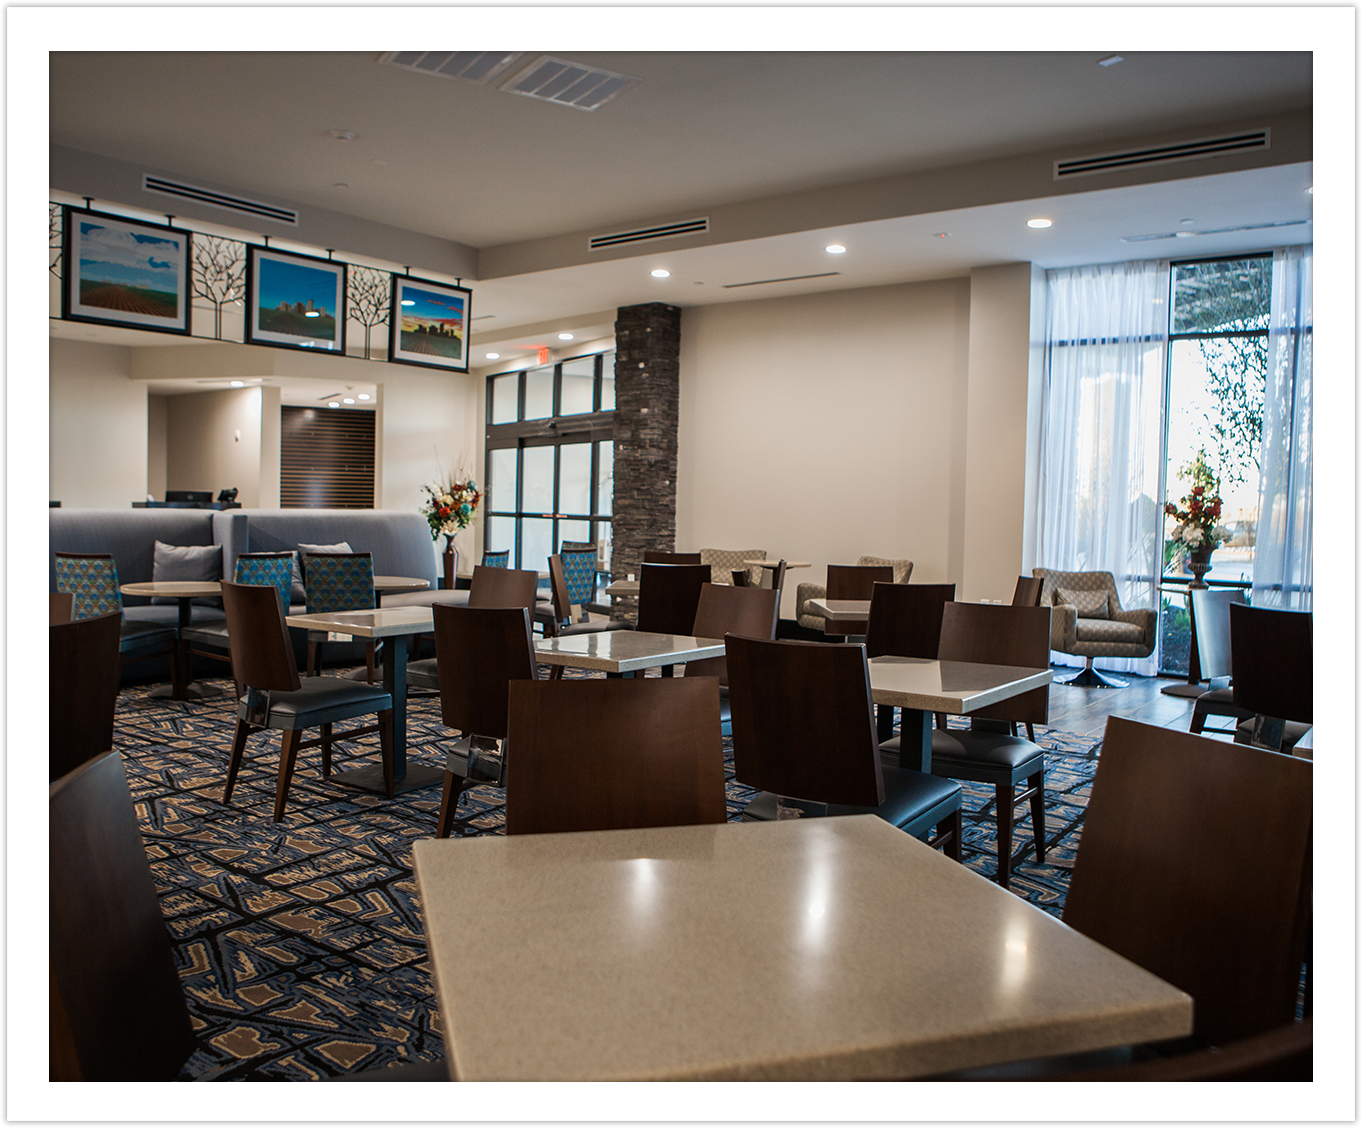 Image of Dining Area at Arbor Hotel and Conference Center Lubbock Texas